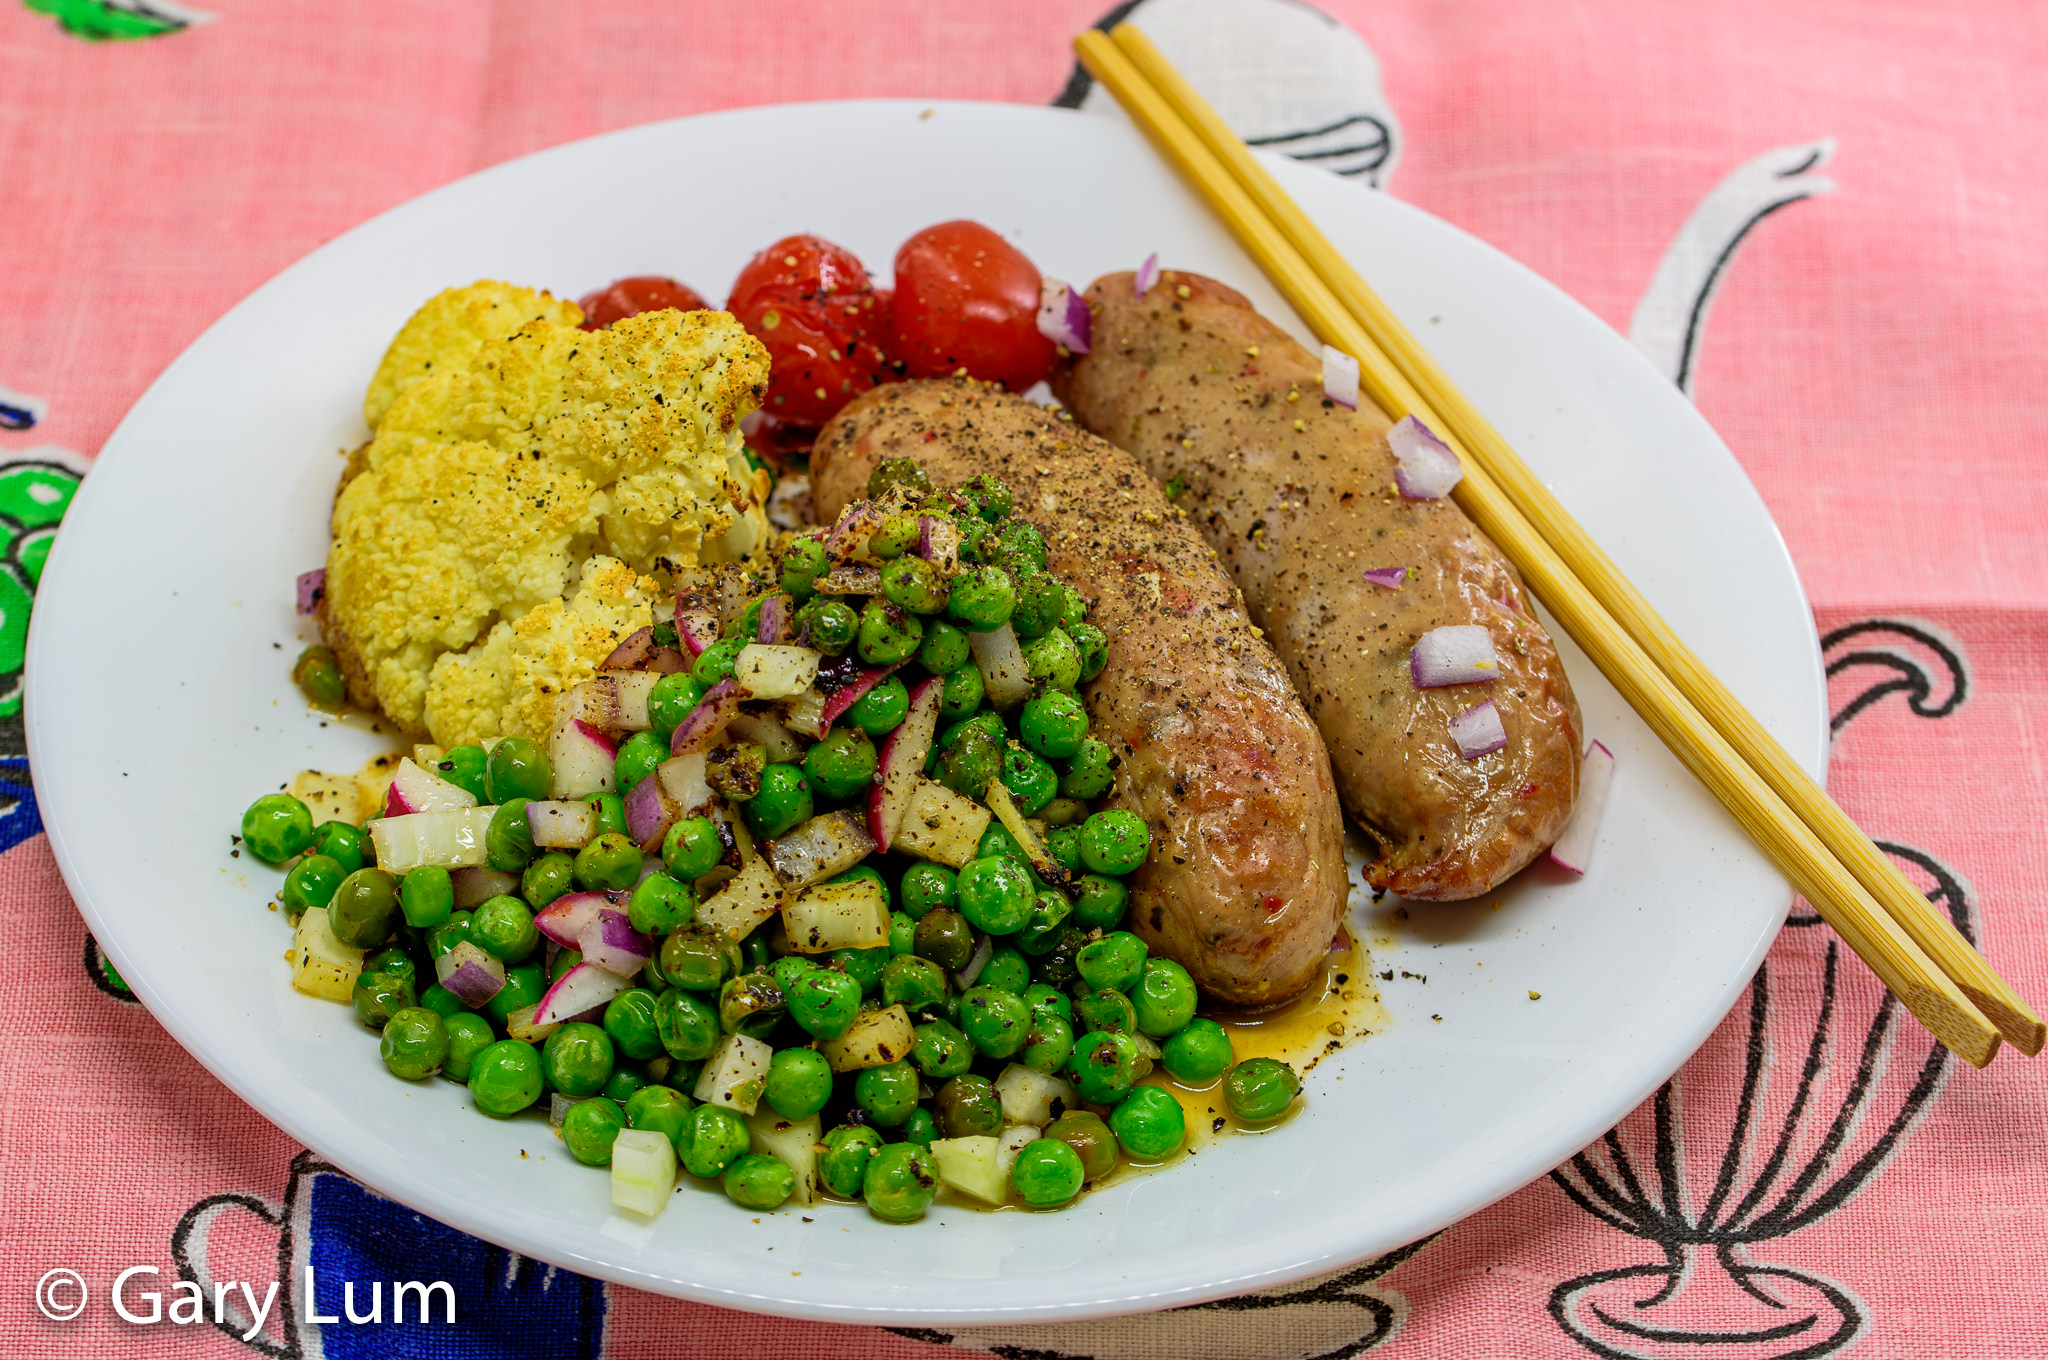 Oven-baked pork sausages, cauliflower, peas, and cherry tomatoes. Gary Lum.